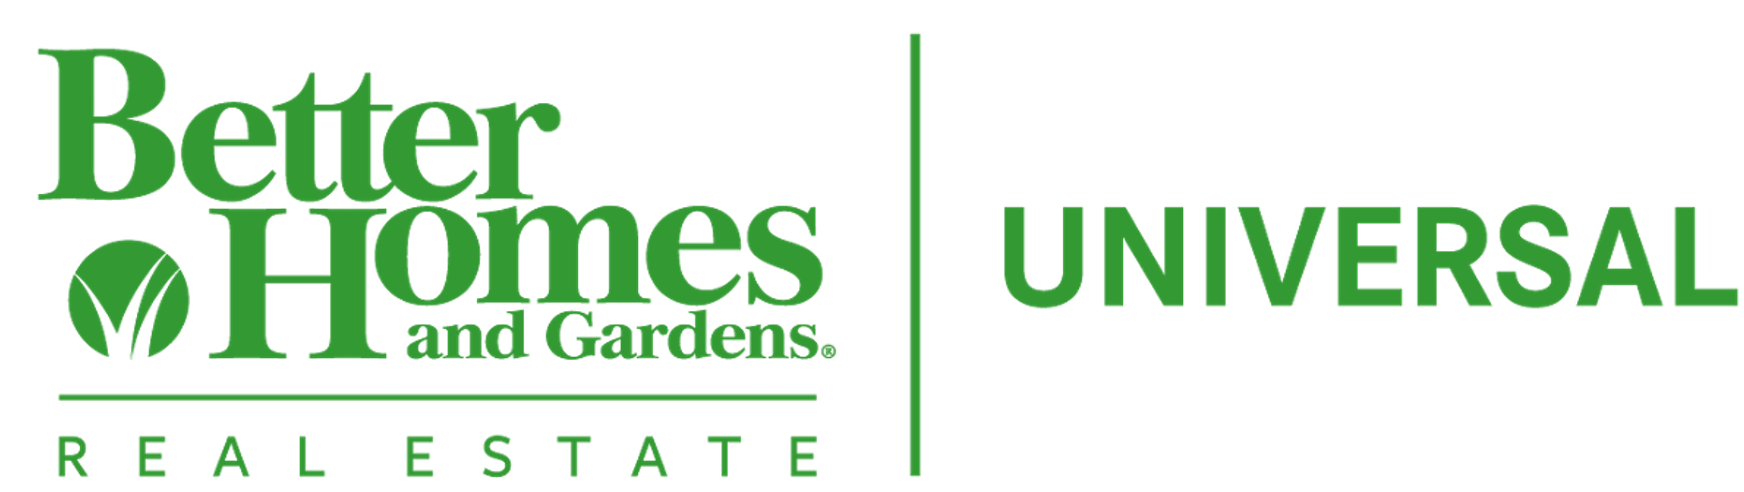 Better homes and gardens real estate universal Better homes and garden real estate